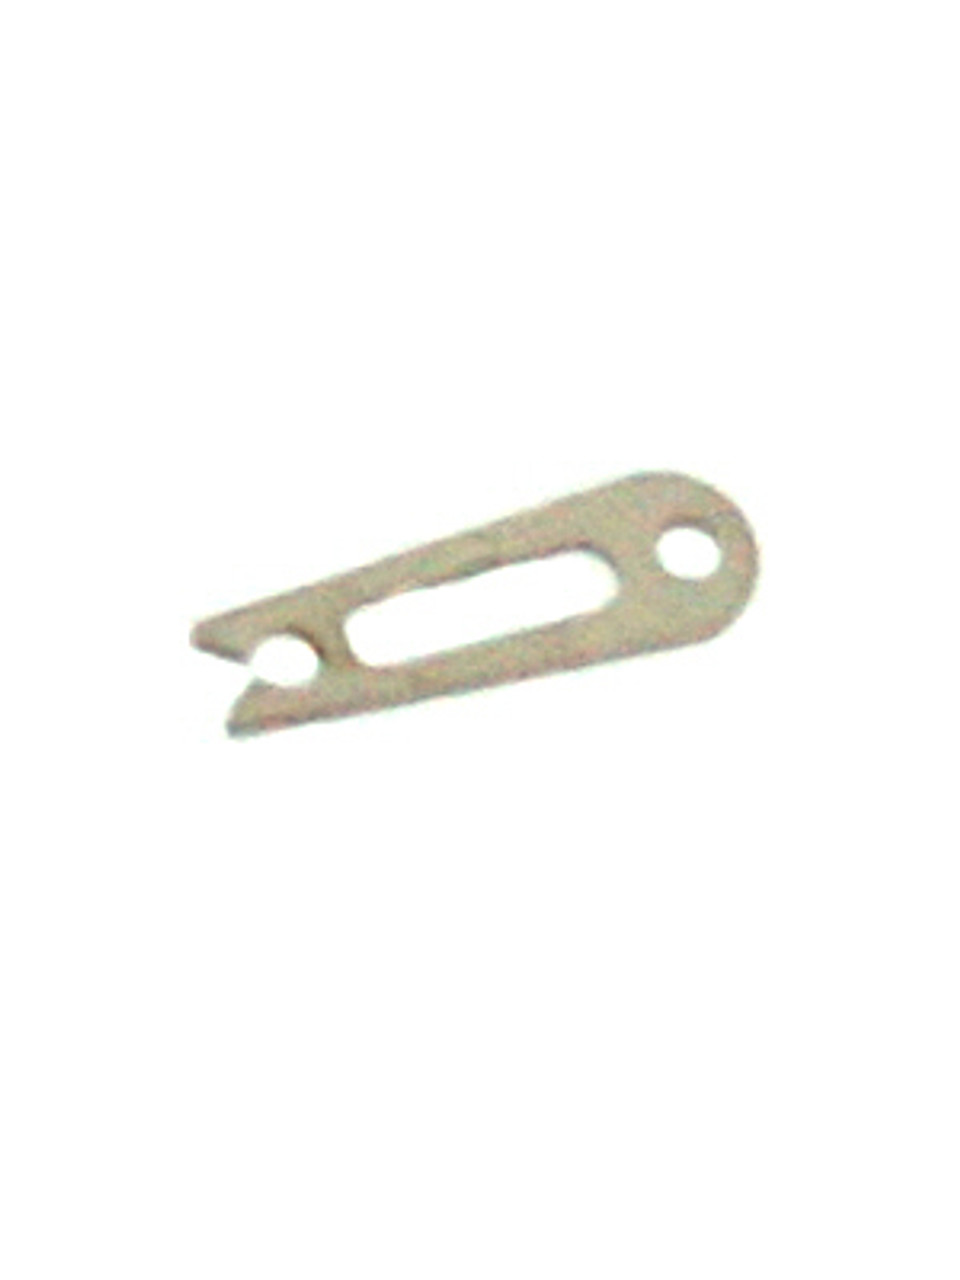 Spring Clip for Oscillating Weight 560-1 -GIB2130-1 - Main